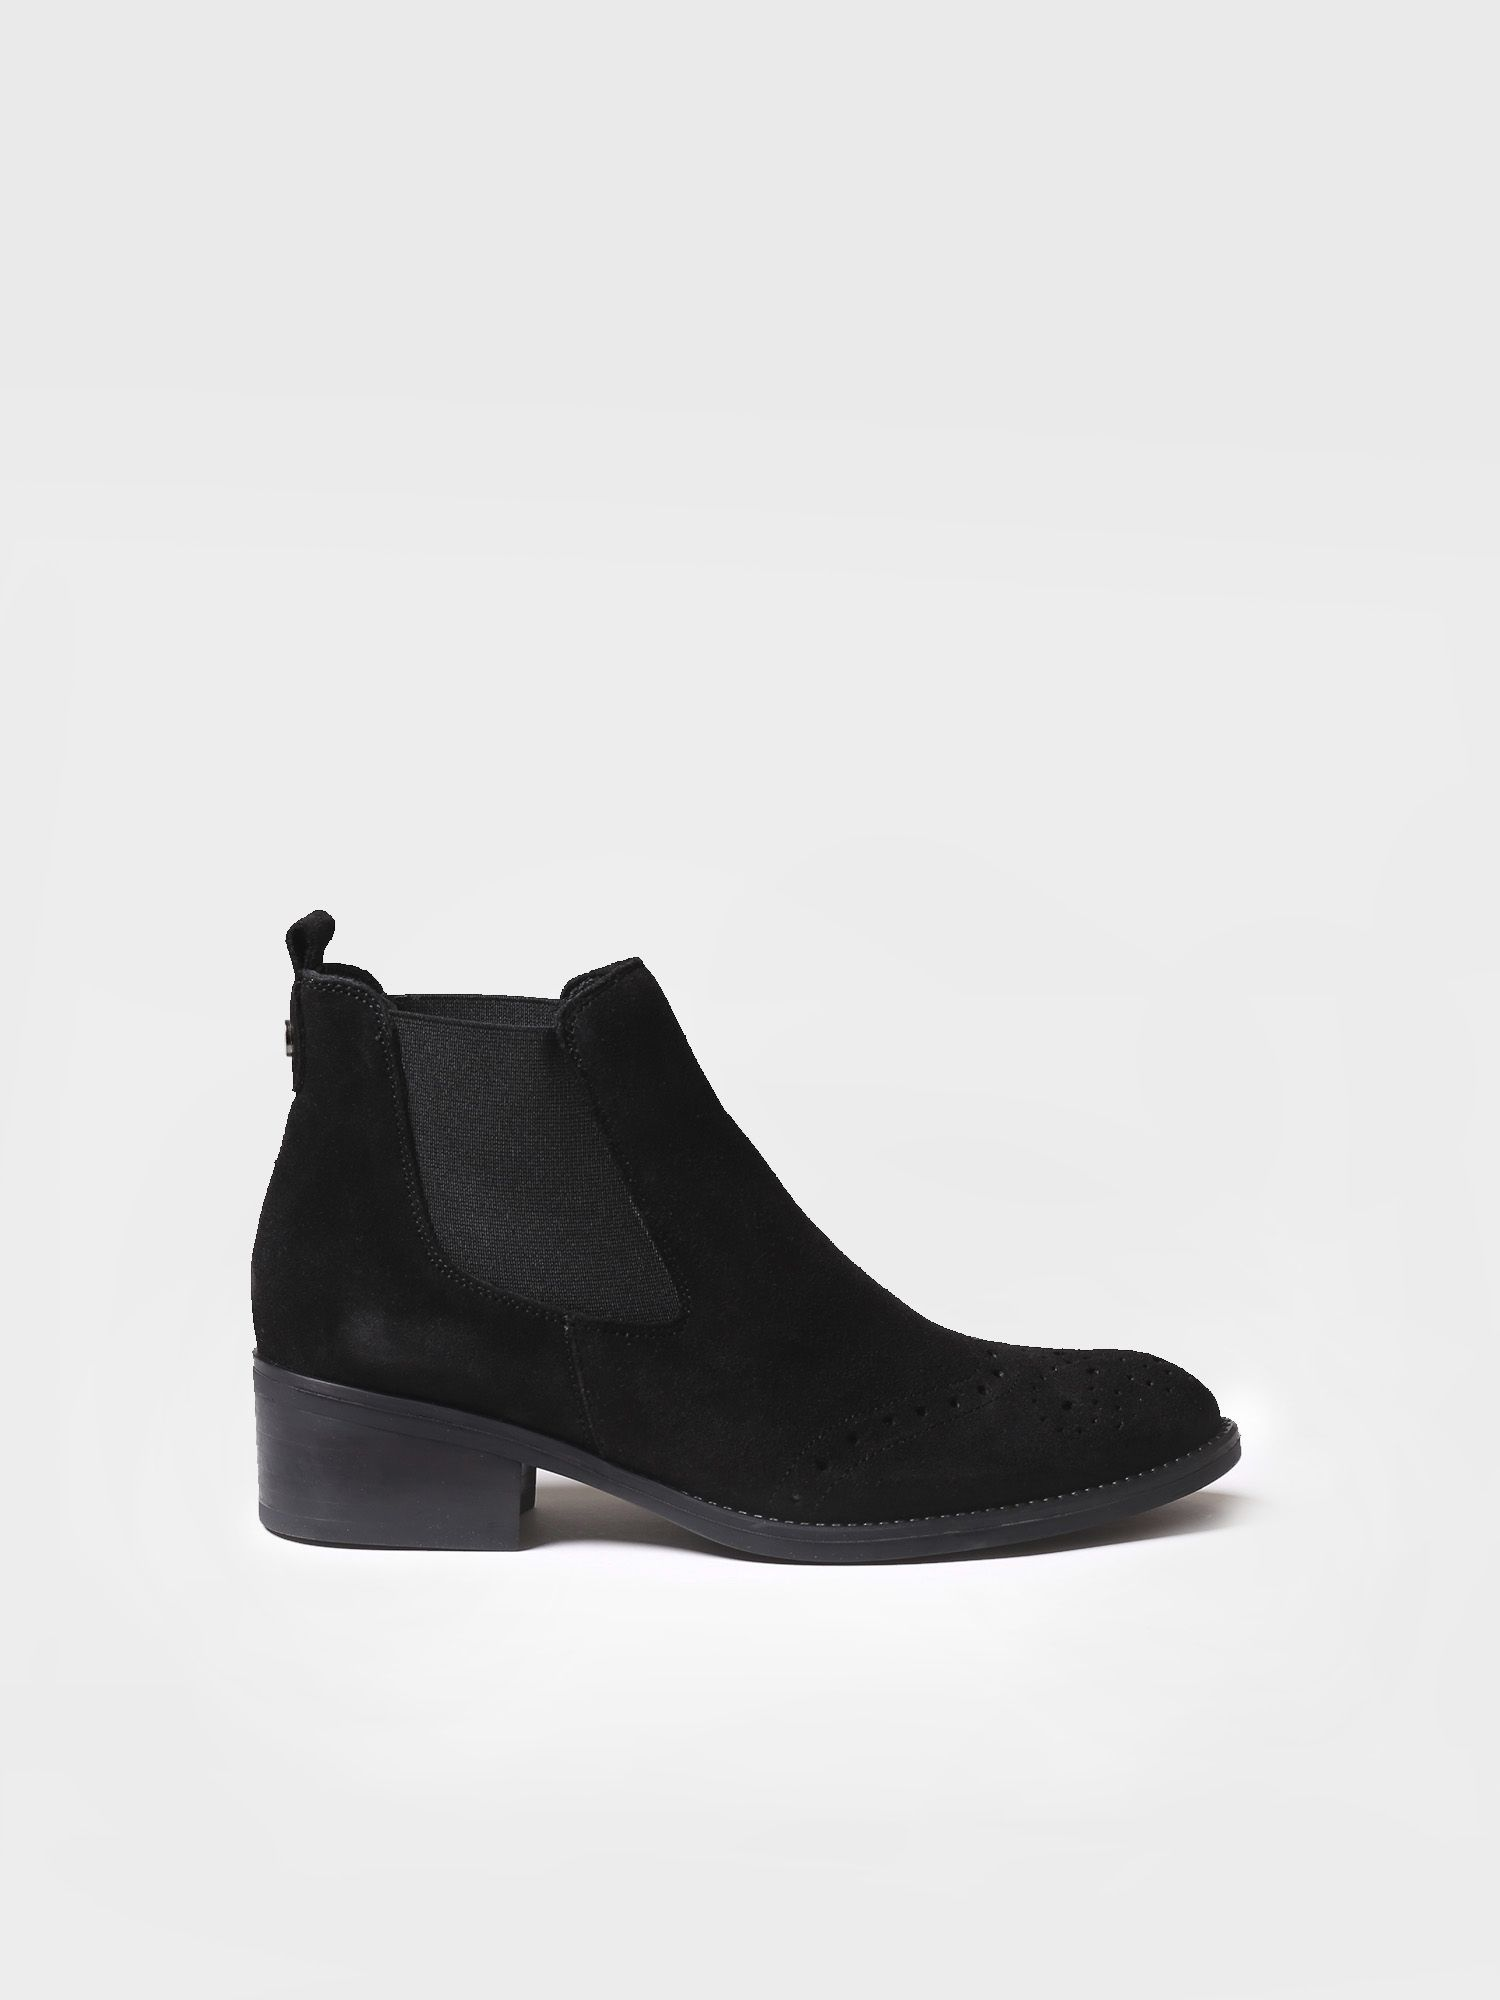 Ankle boot for women made of suede - TIVAT-SY